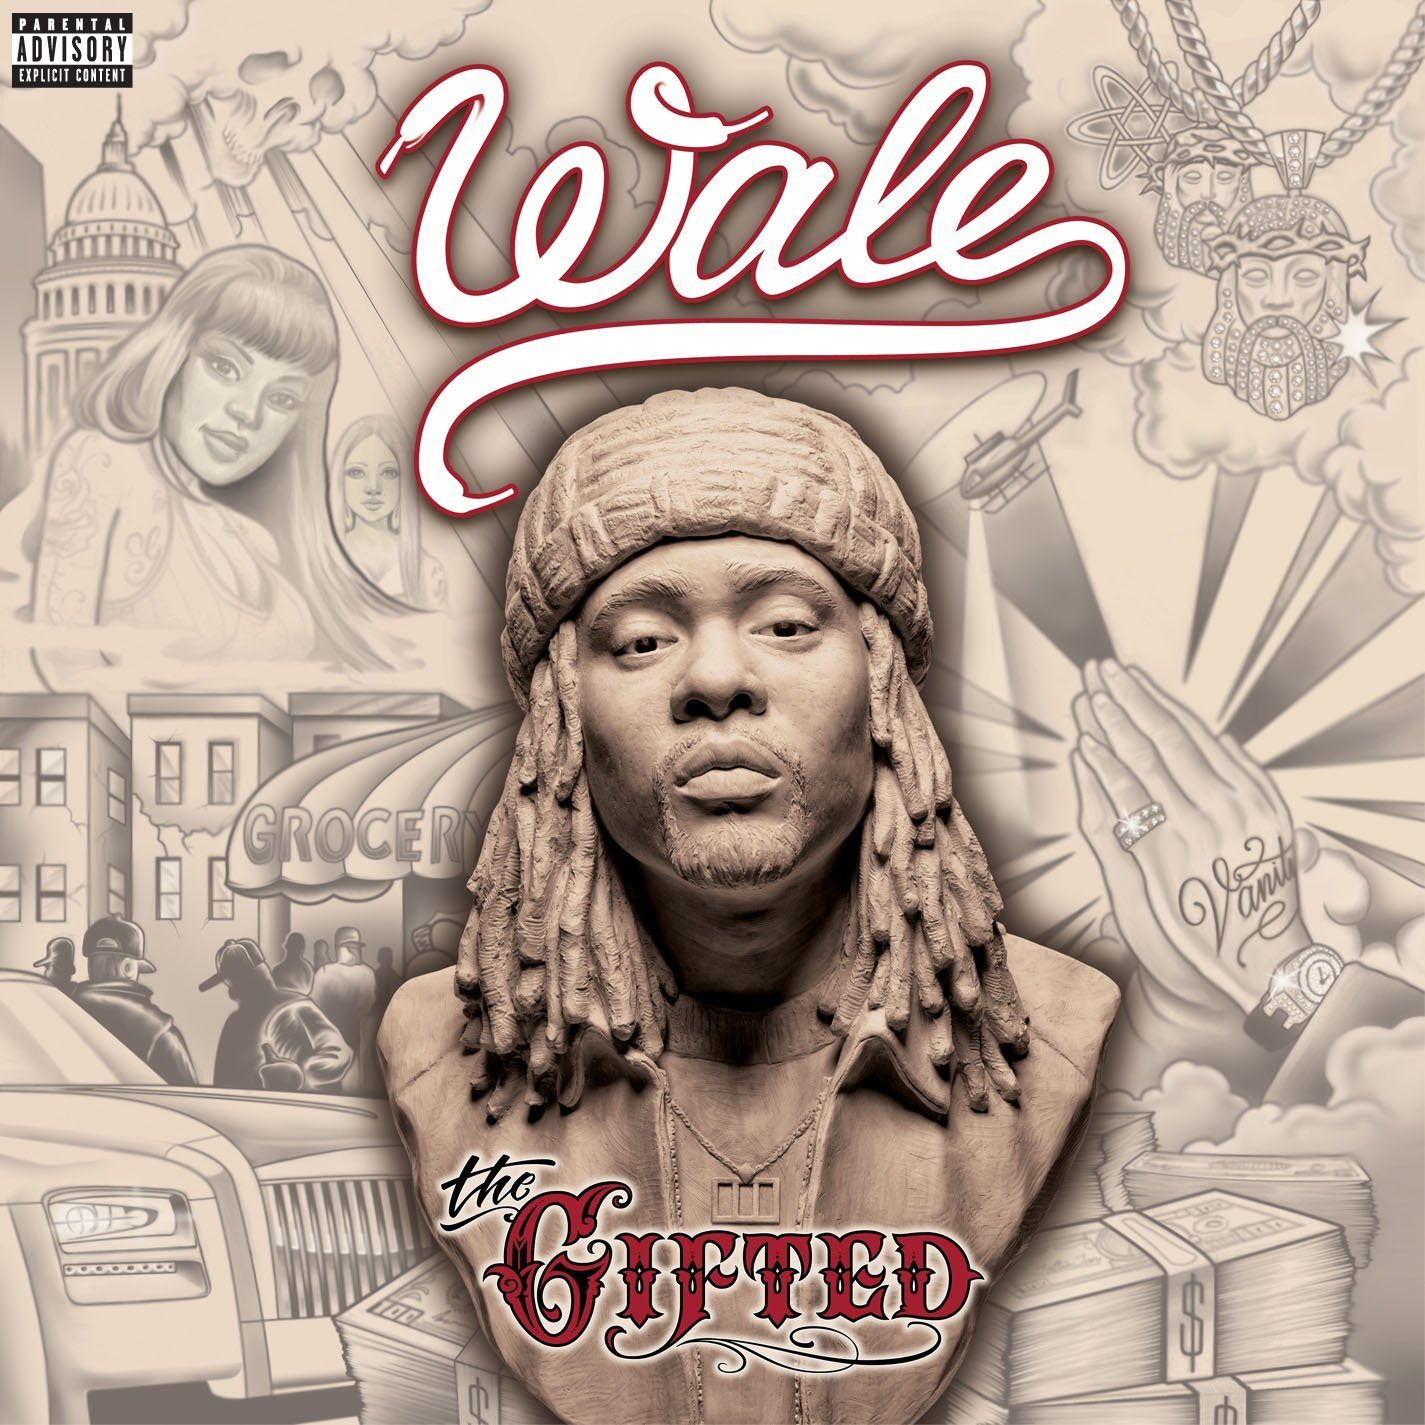 Wale, The Gifted